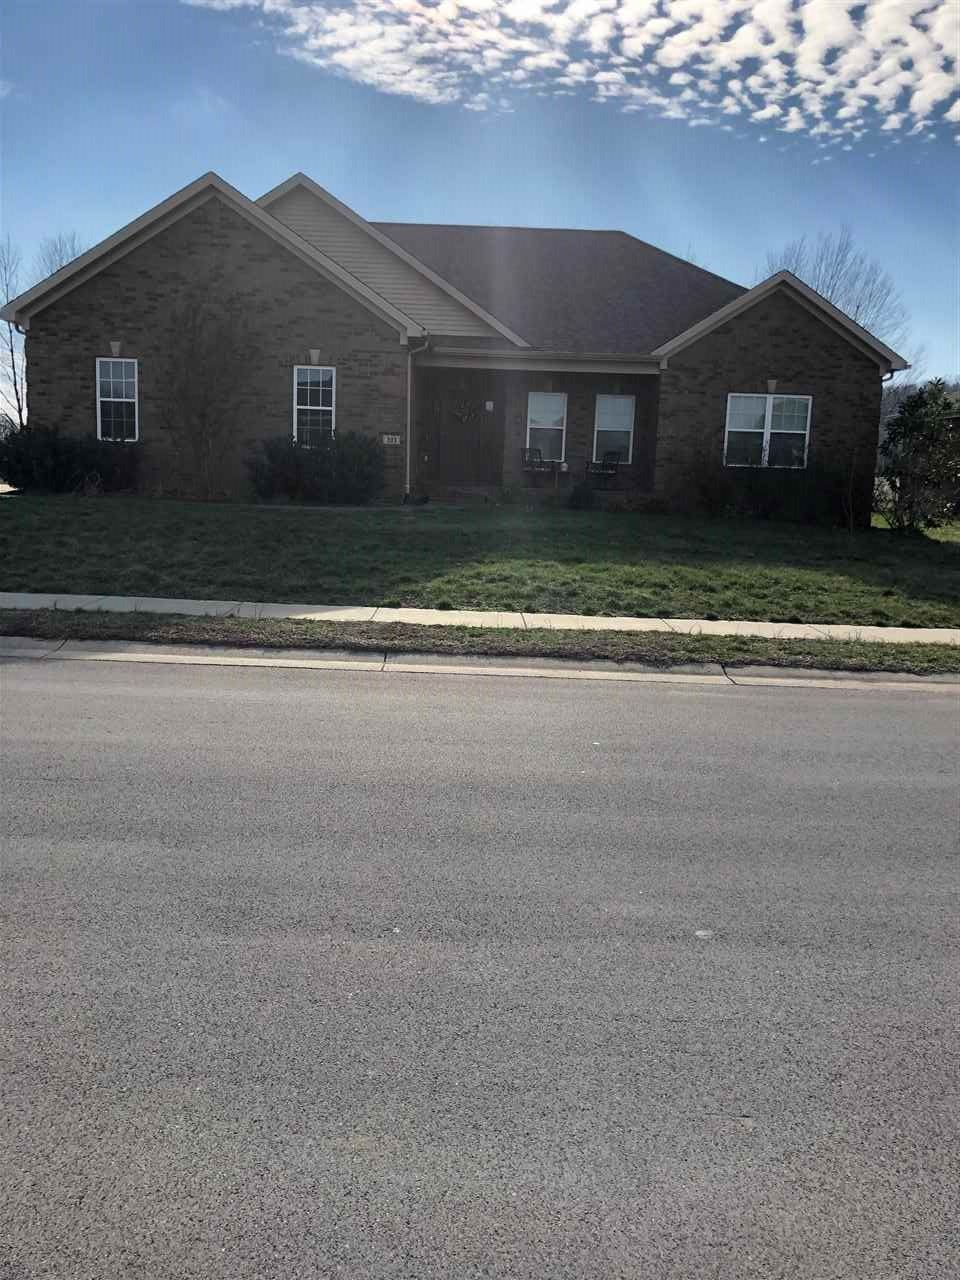 303 Paige Ave., Bowling Green, KY 42101 - #: 20200666